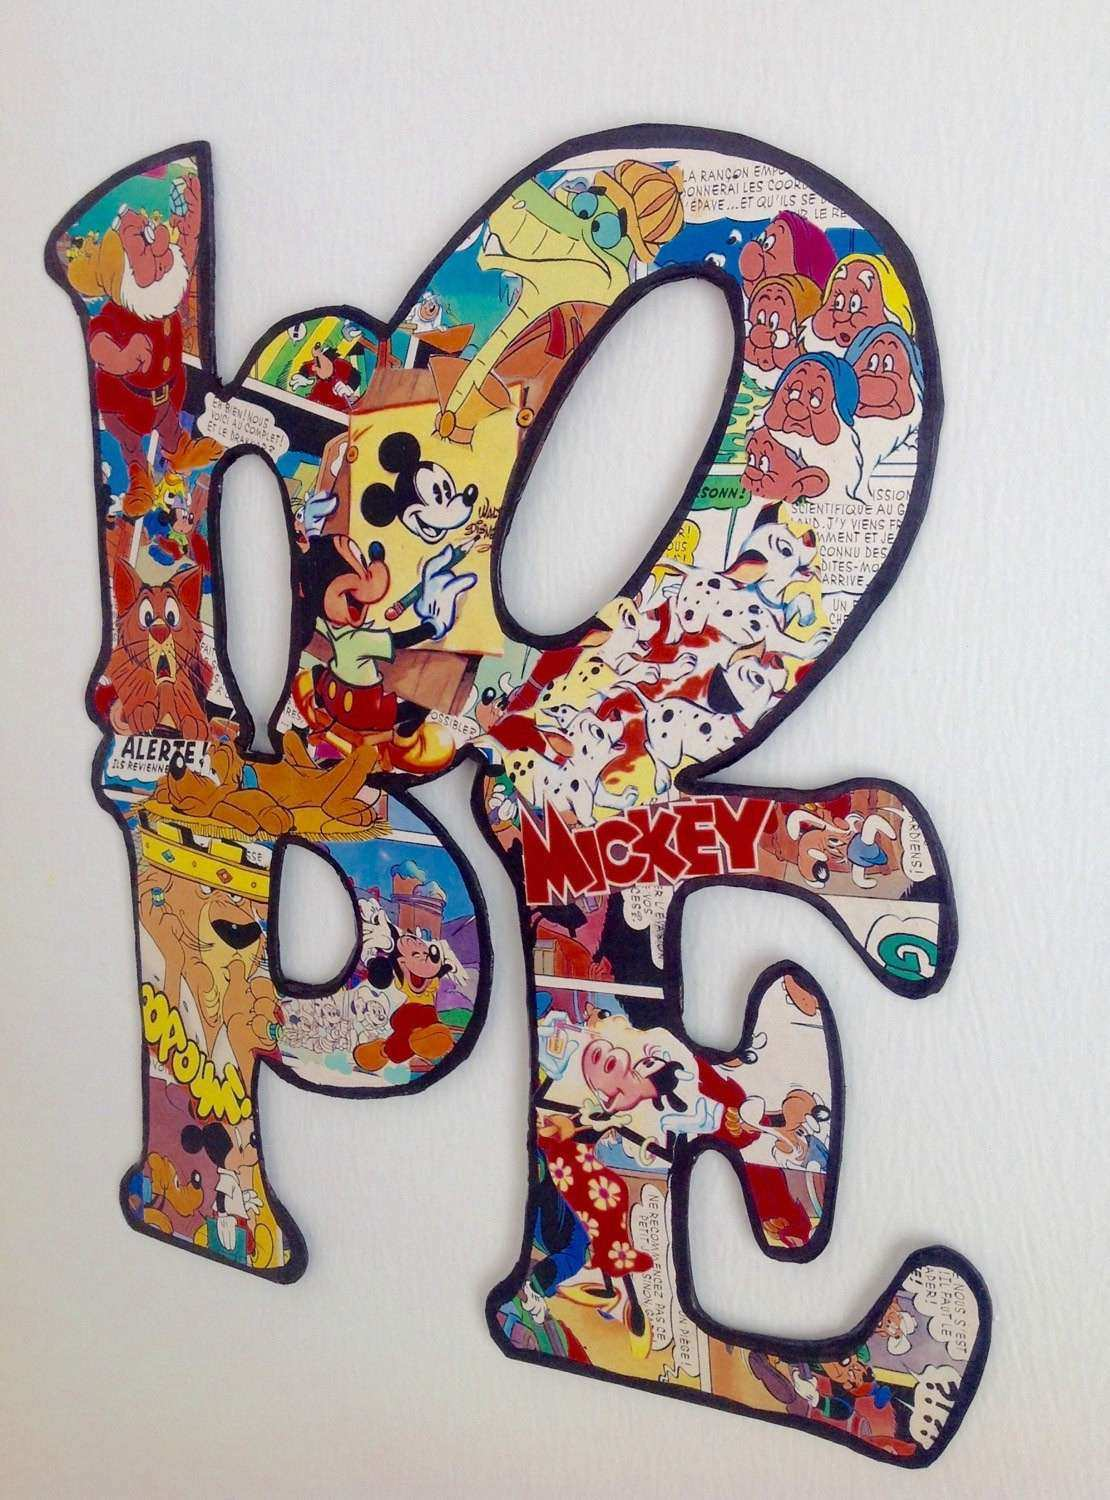 HOPE sign ic book letters Mickey Mouse collage wall art